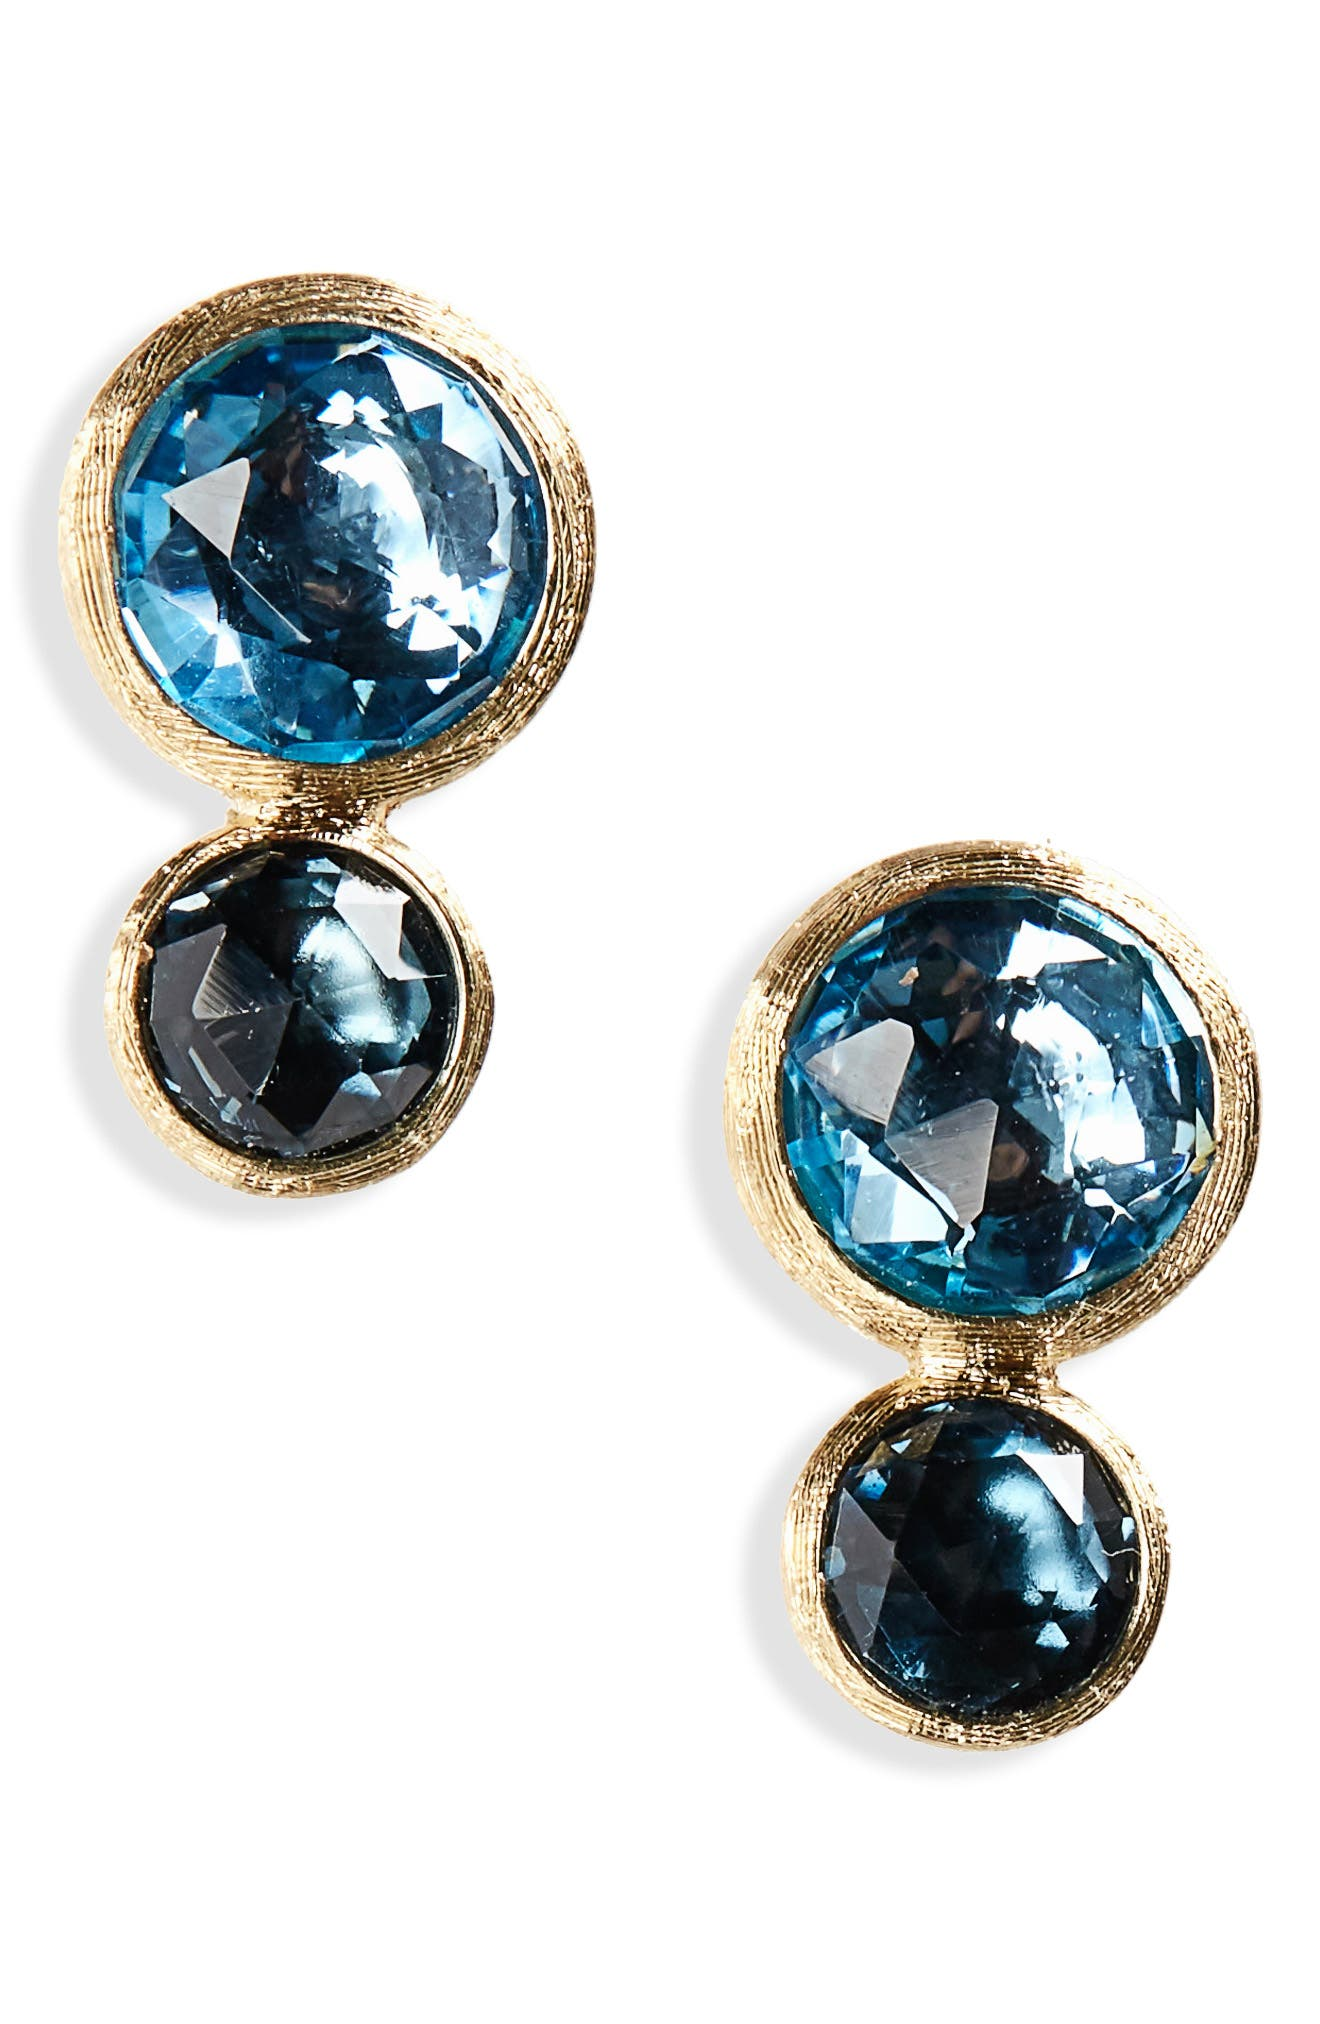 Jaipur 2-Stone Blue Topaz Stud Earrings,                         Main,                         color, 710